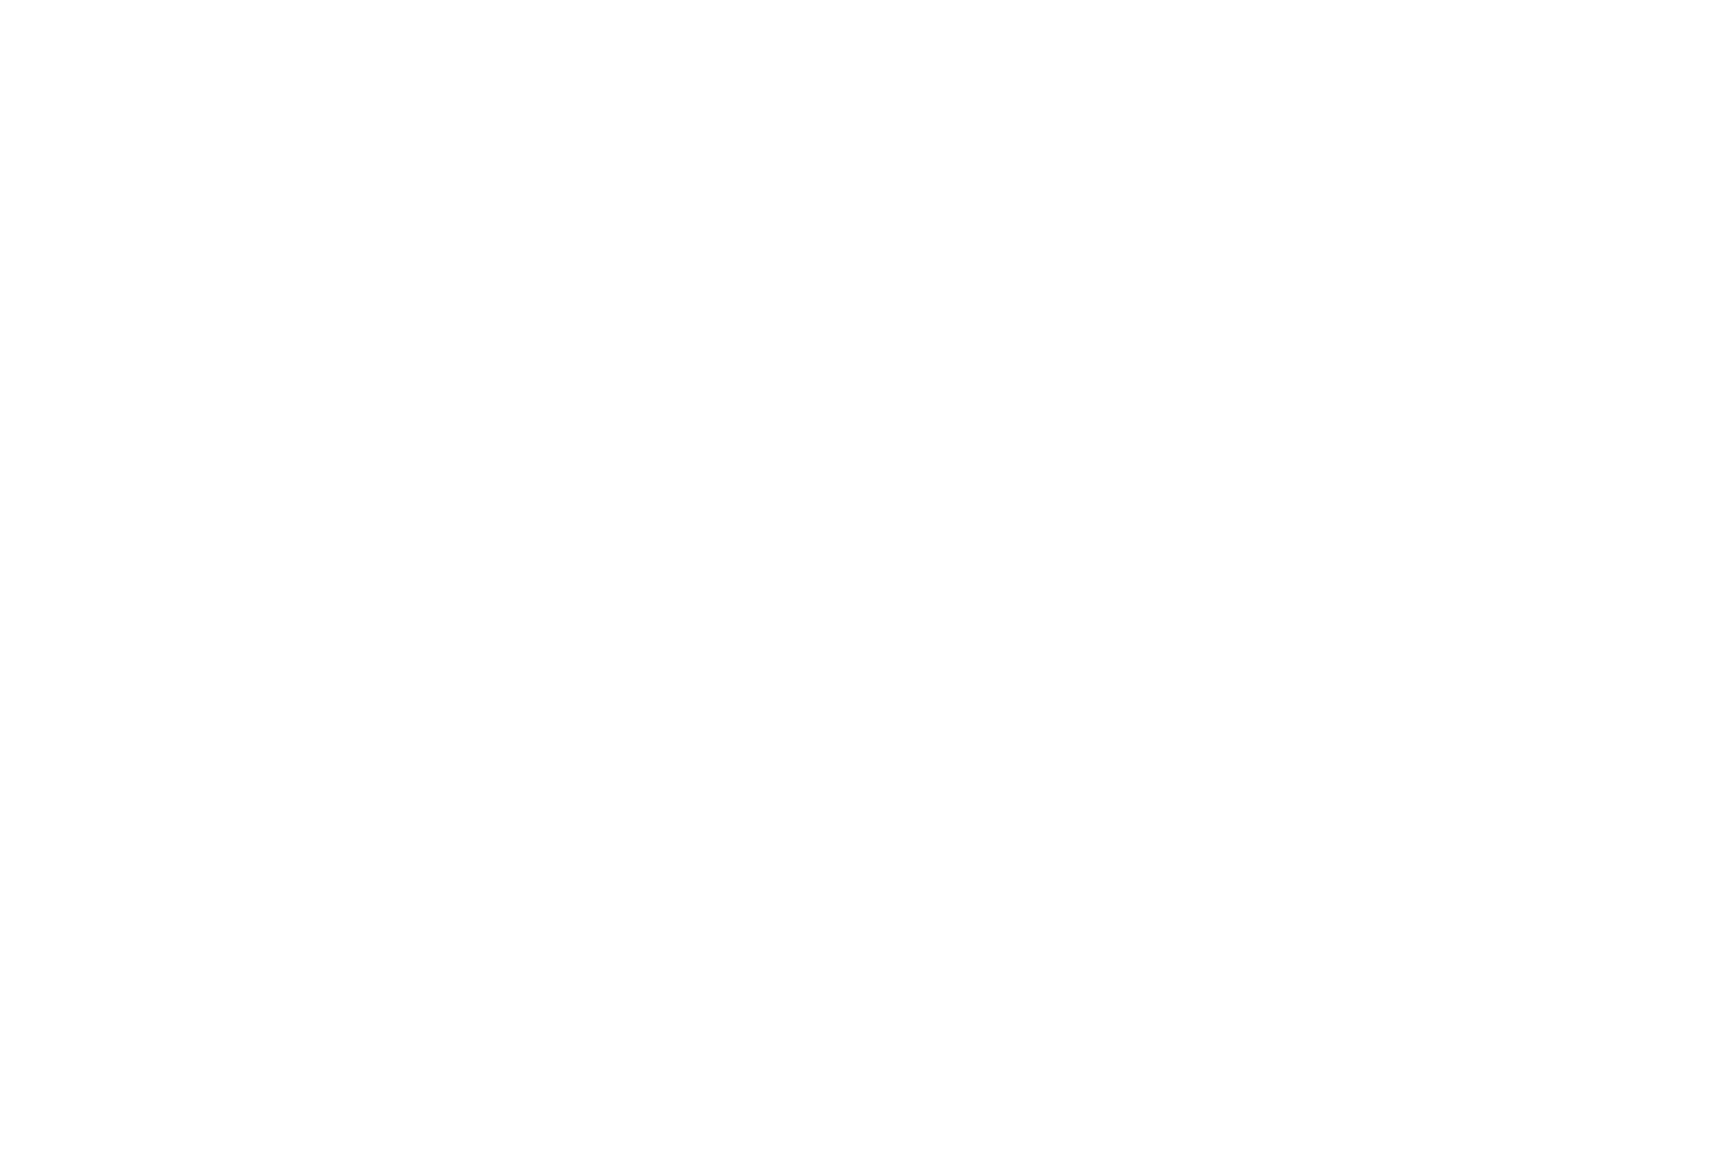 OFFICIAL SELECTION - The RSF Marthas Vineyard African American Film Festival - 2019.png